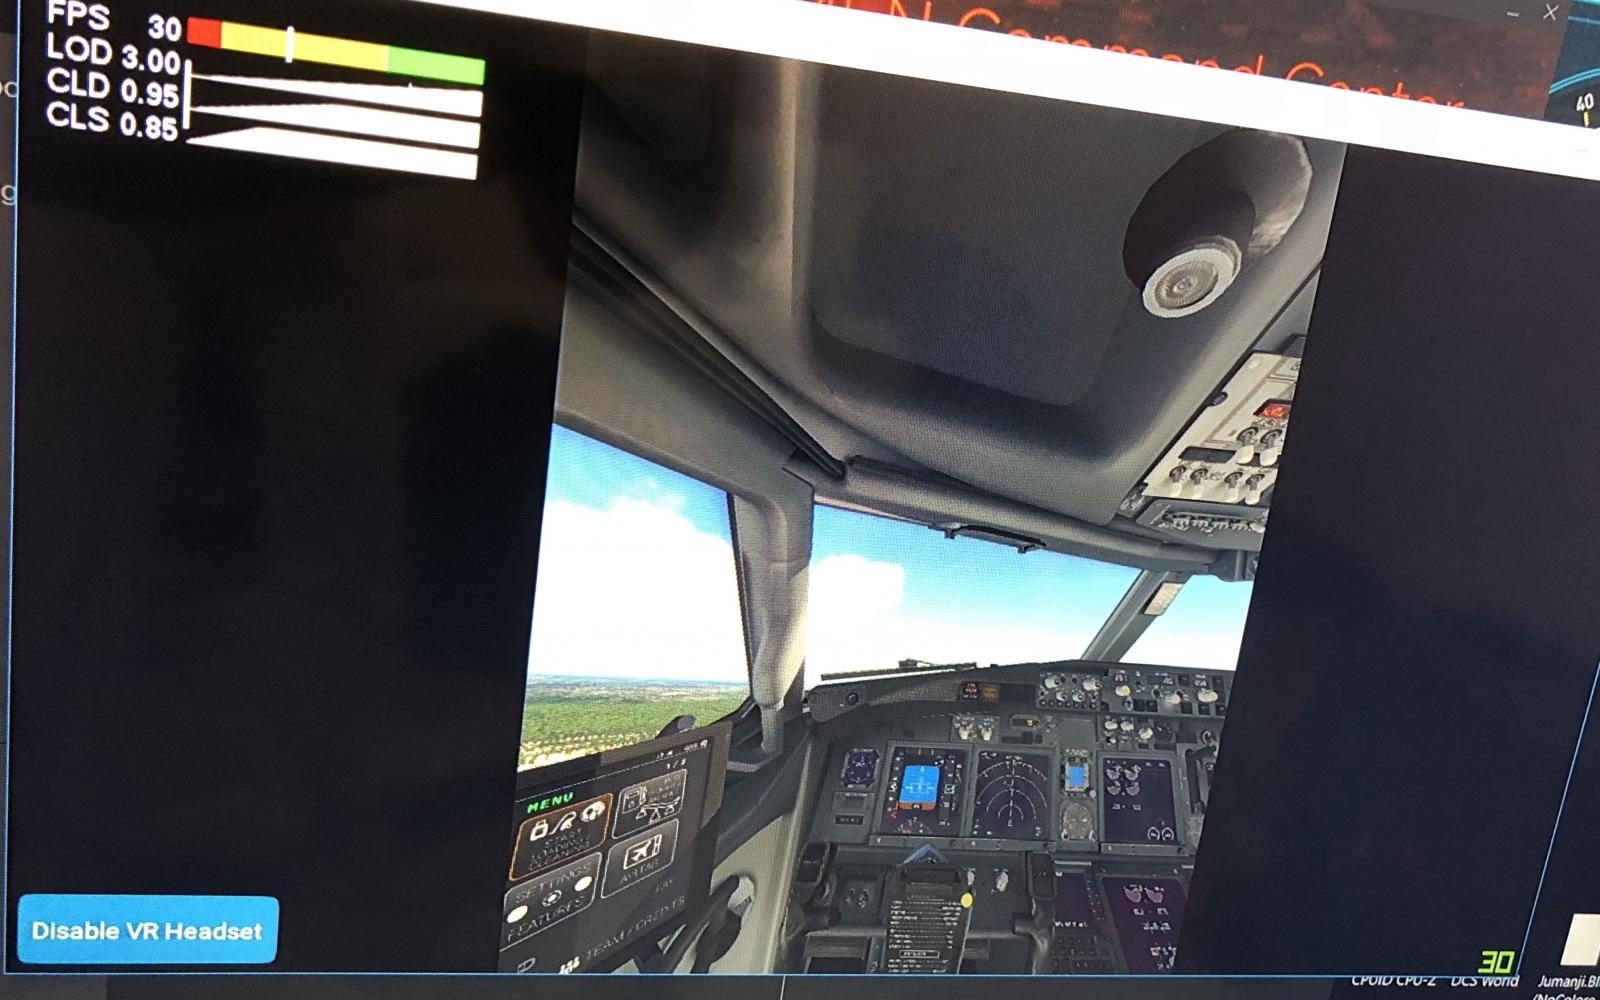 HDR or AA x16 and objects at máximum? - VR in X-Plane 11 - X